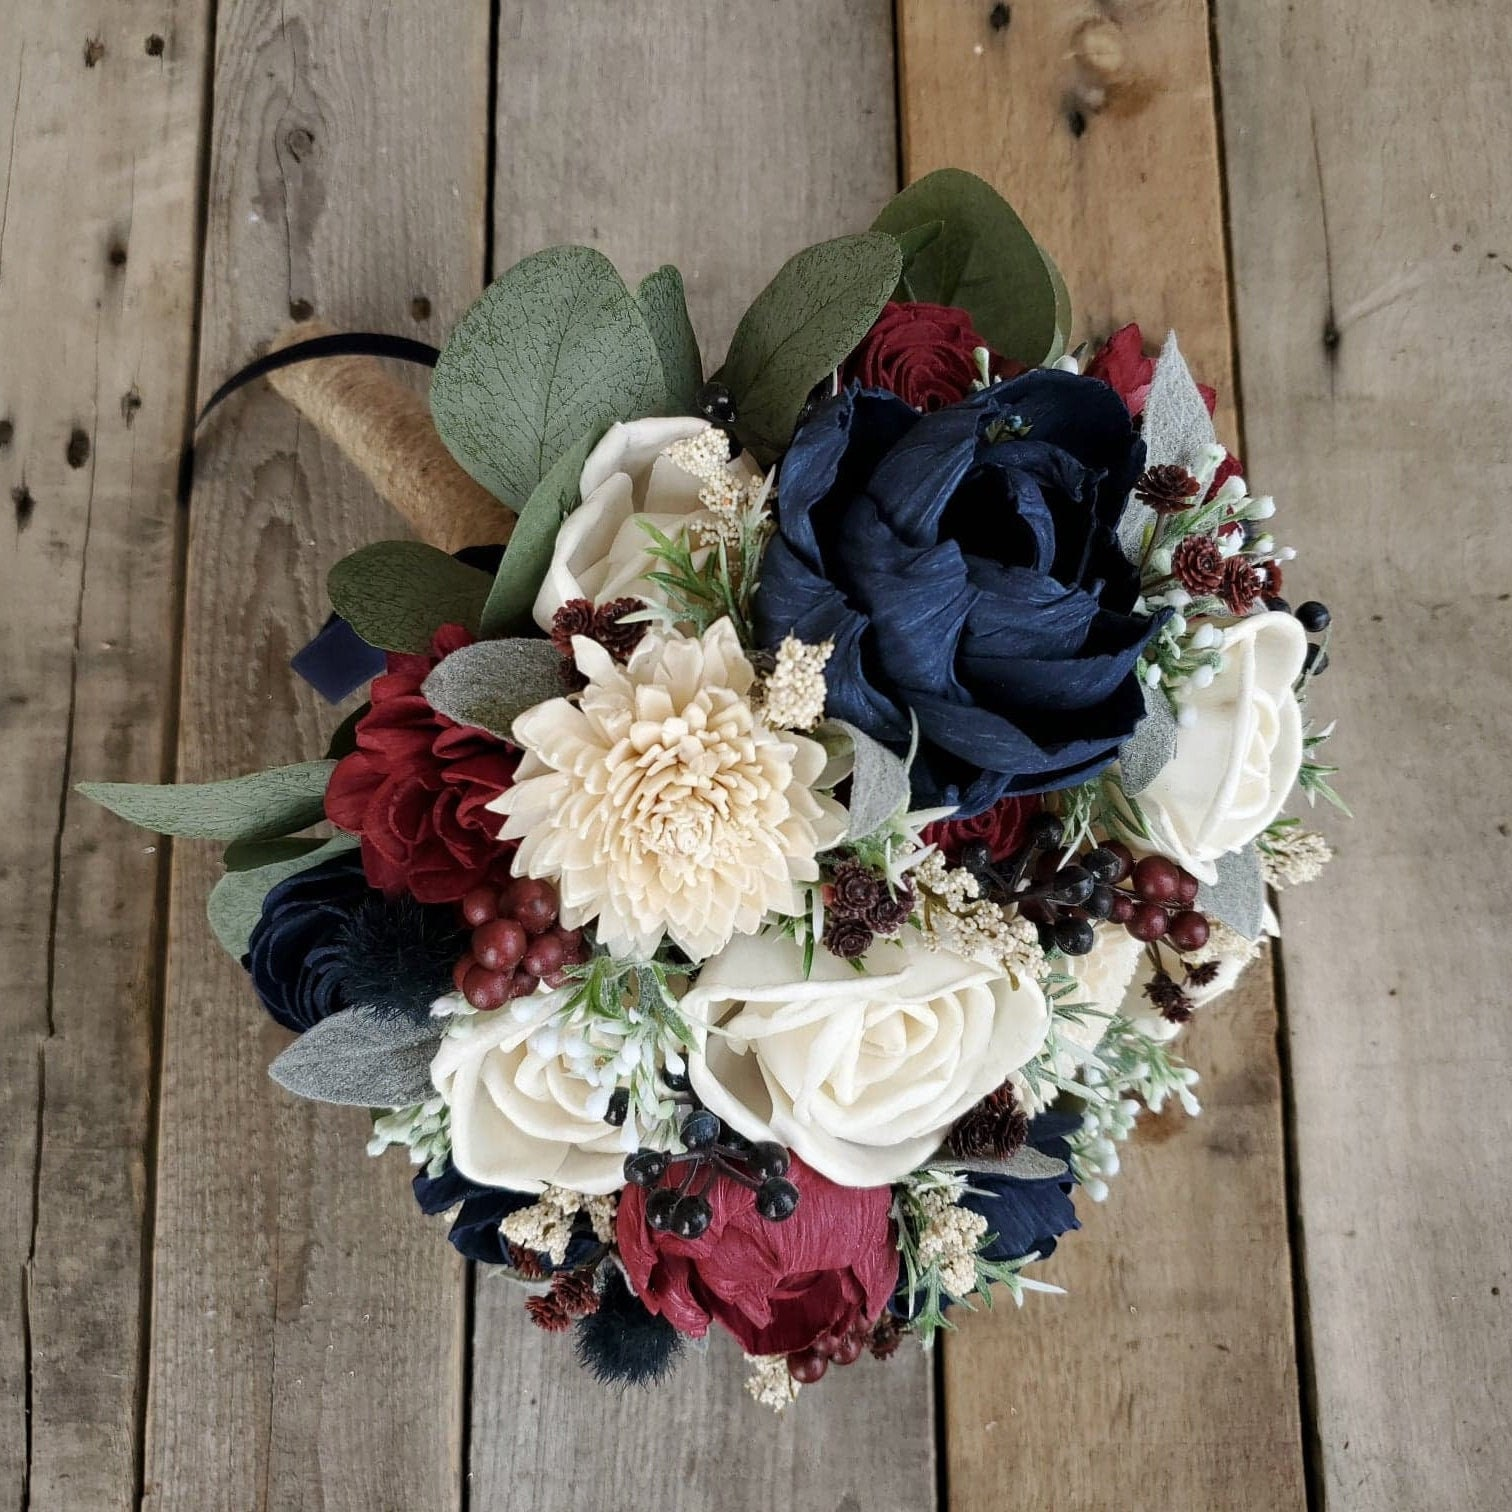 Sola Flower Bouquet Wood Flower Bouquet Navy And Burgundy Wedding Eucalyptus Wedding Dried Flower Bouquet Rustic Wedding Bouquet